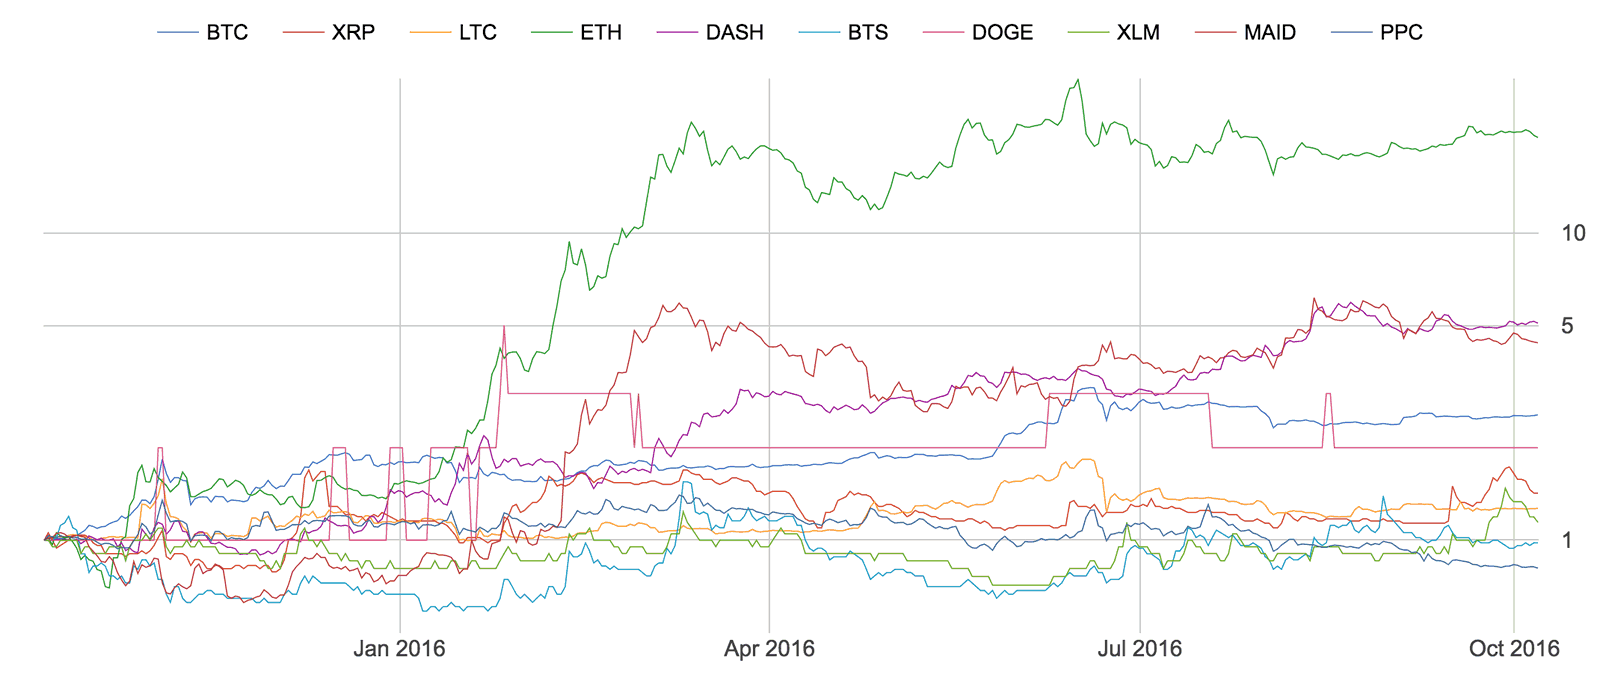 Top 10 coins, returns starting 12 months ago